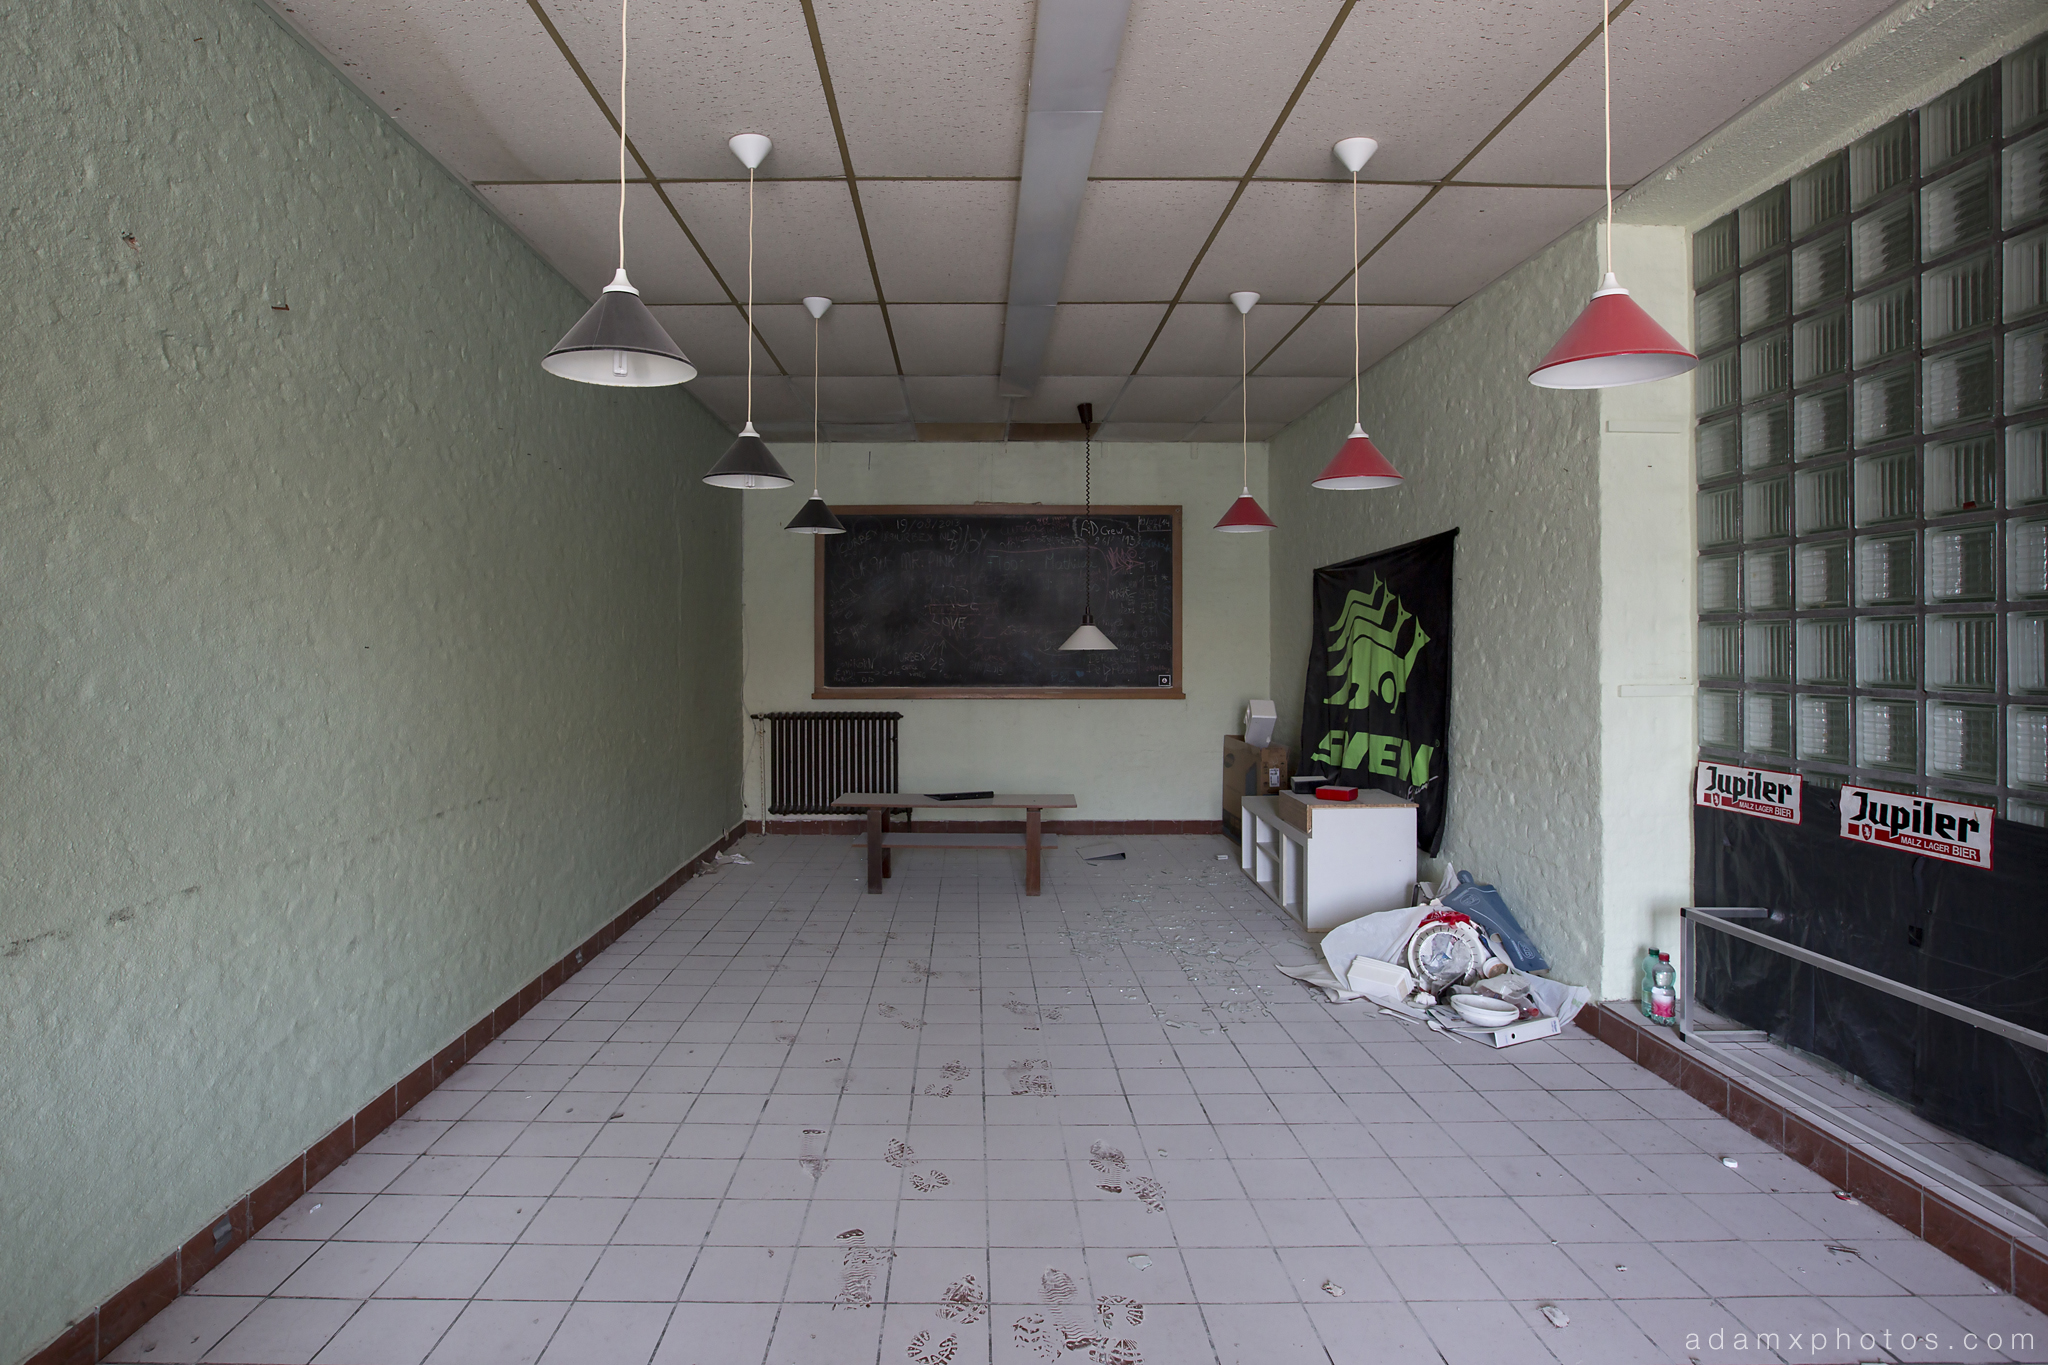 Sports room Adam X Urbex UE Urban Exploration Belgium Piscine Crachoir swimming pool abandoned derelict unused empty disused decay decayed decaying grimy grime